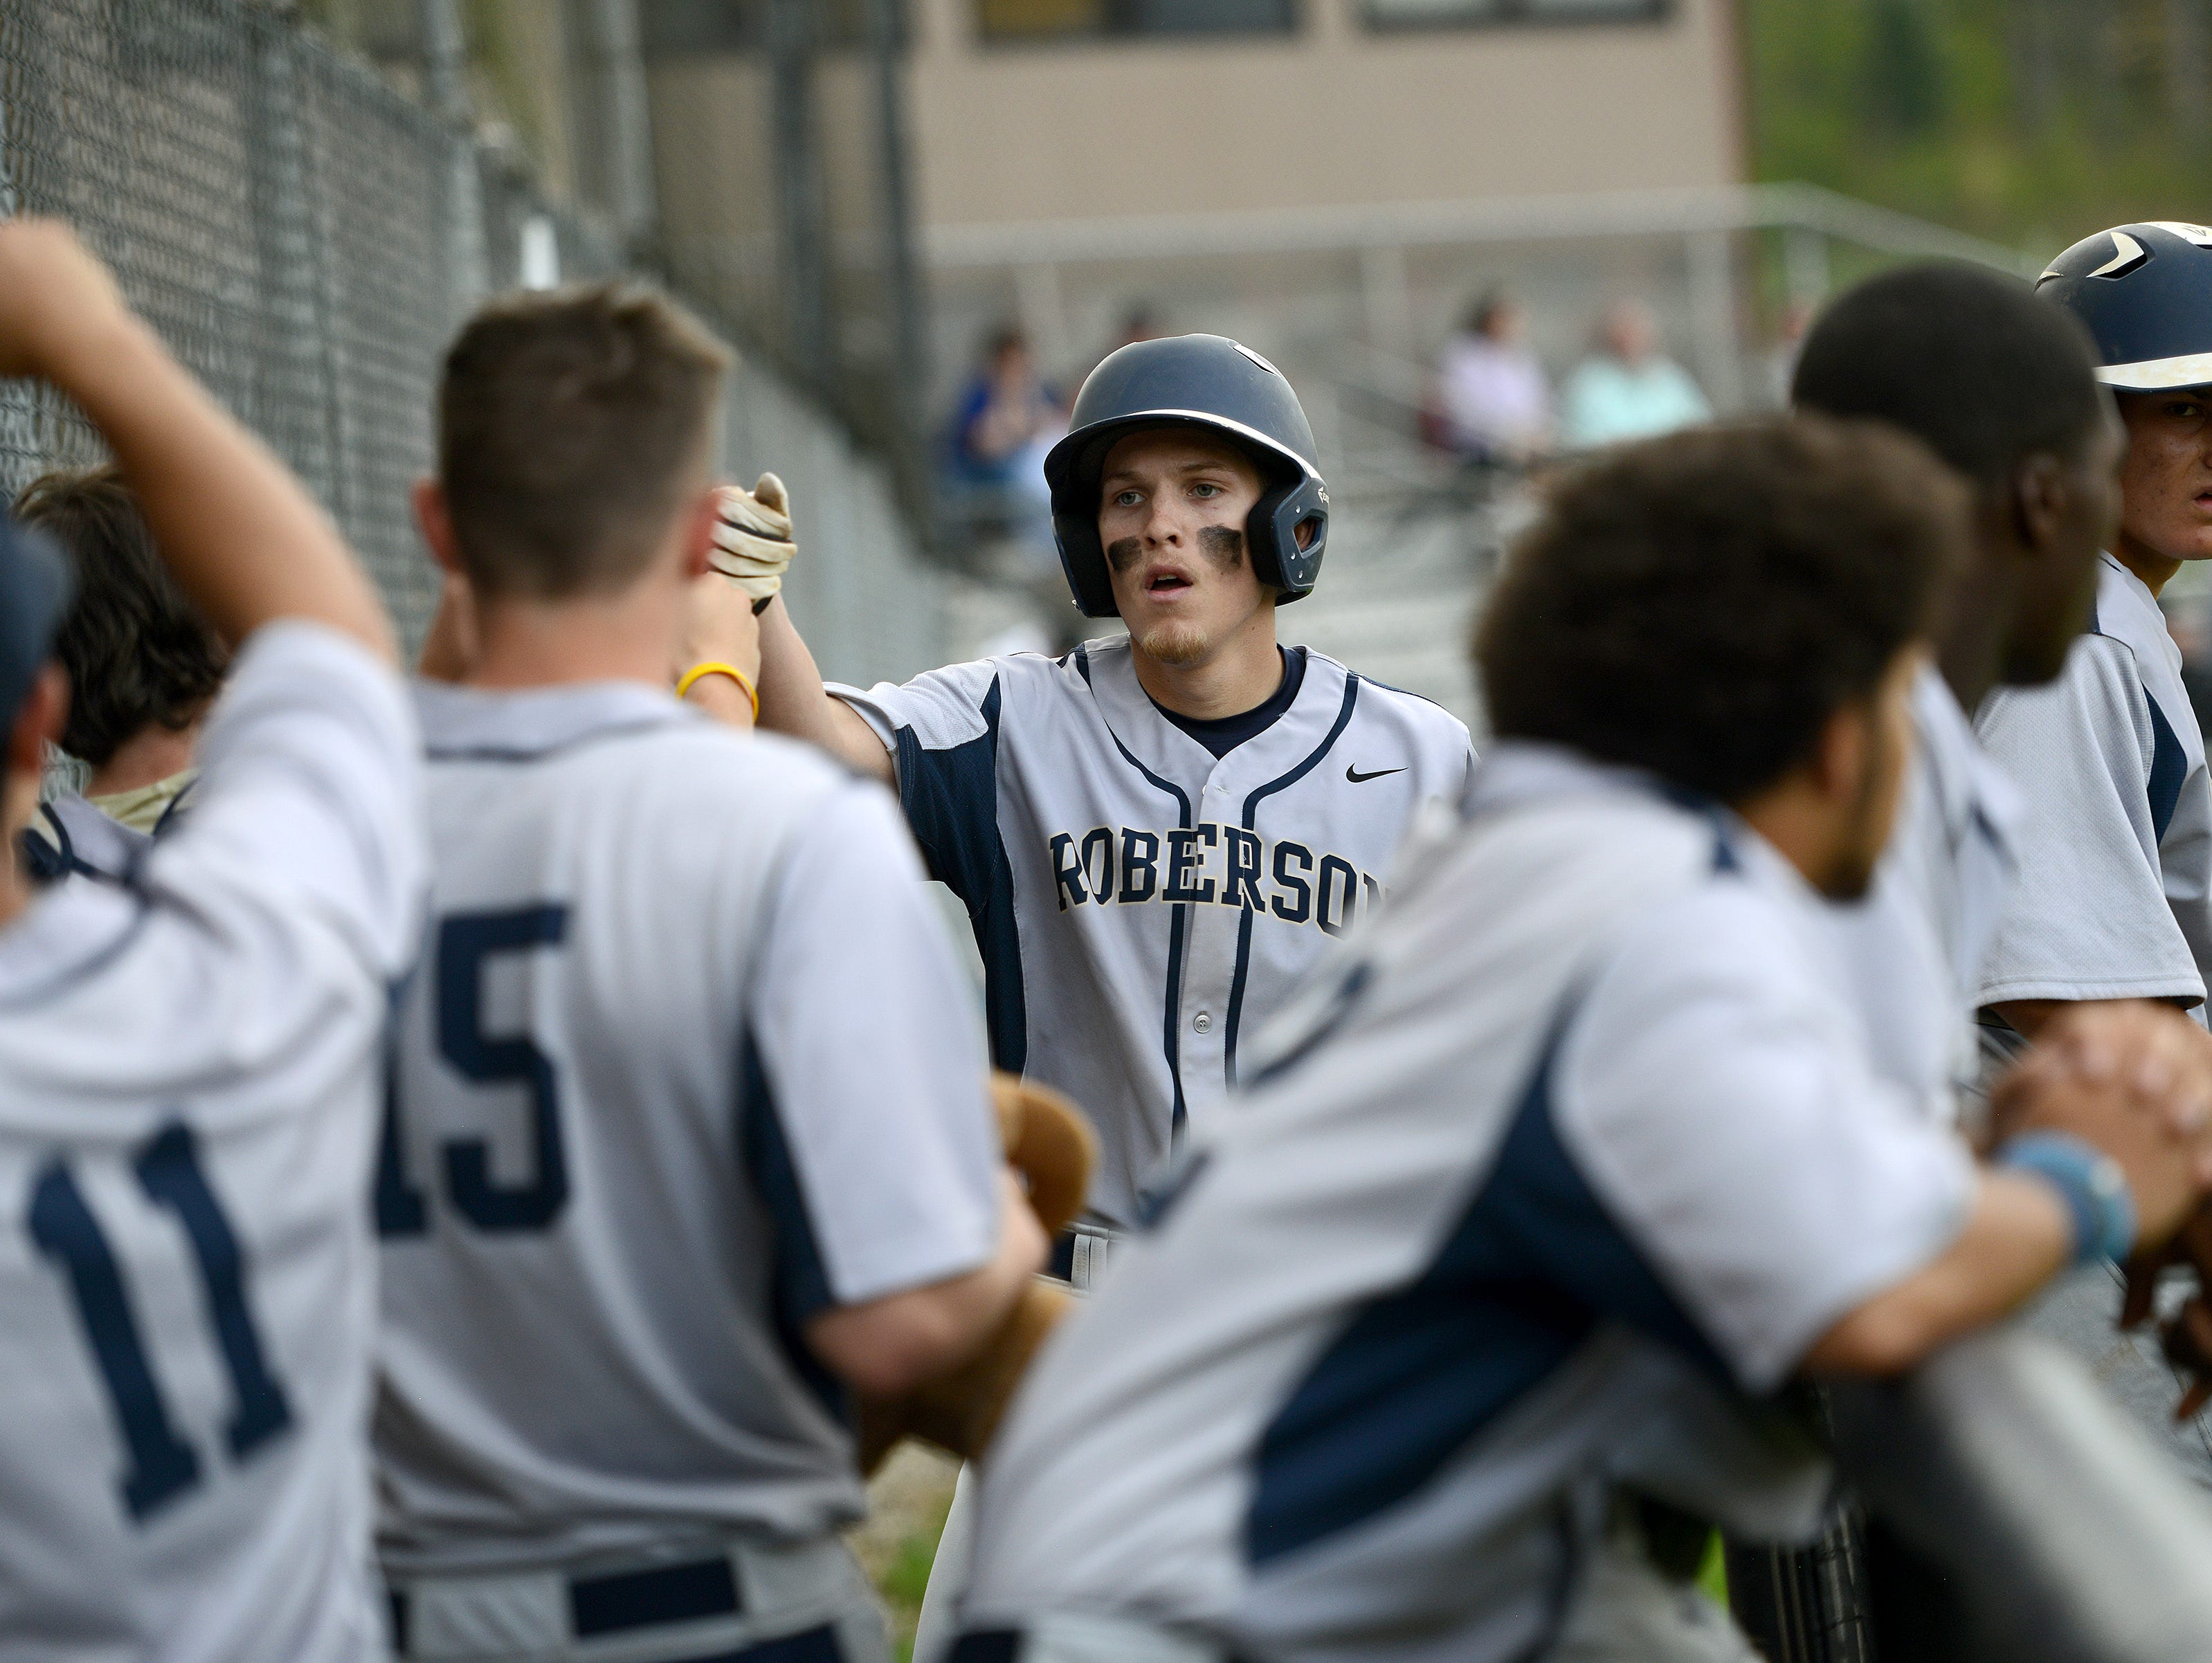 Josh McNair is the only senior for the Roberson baseball team.